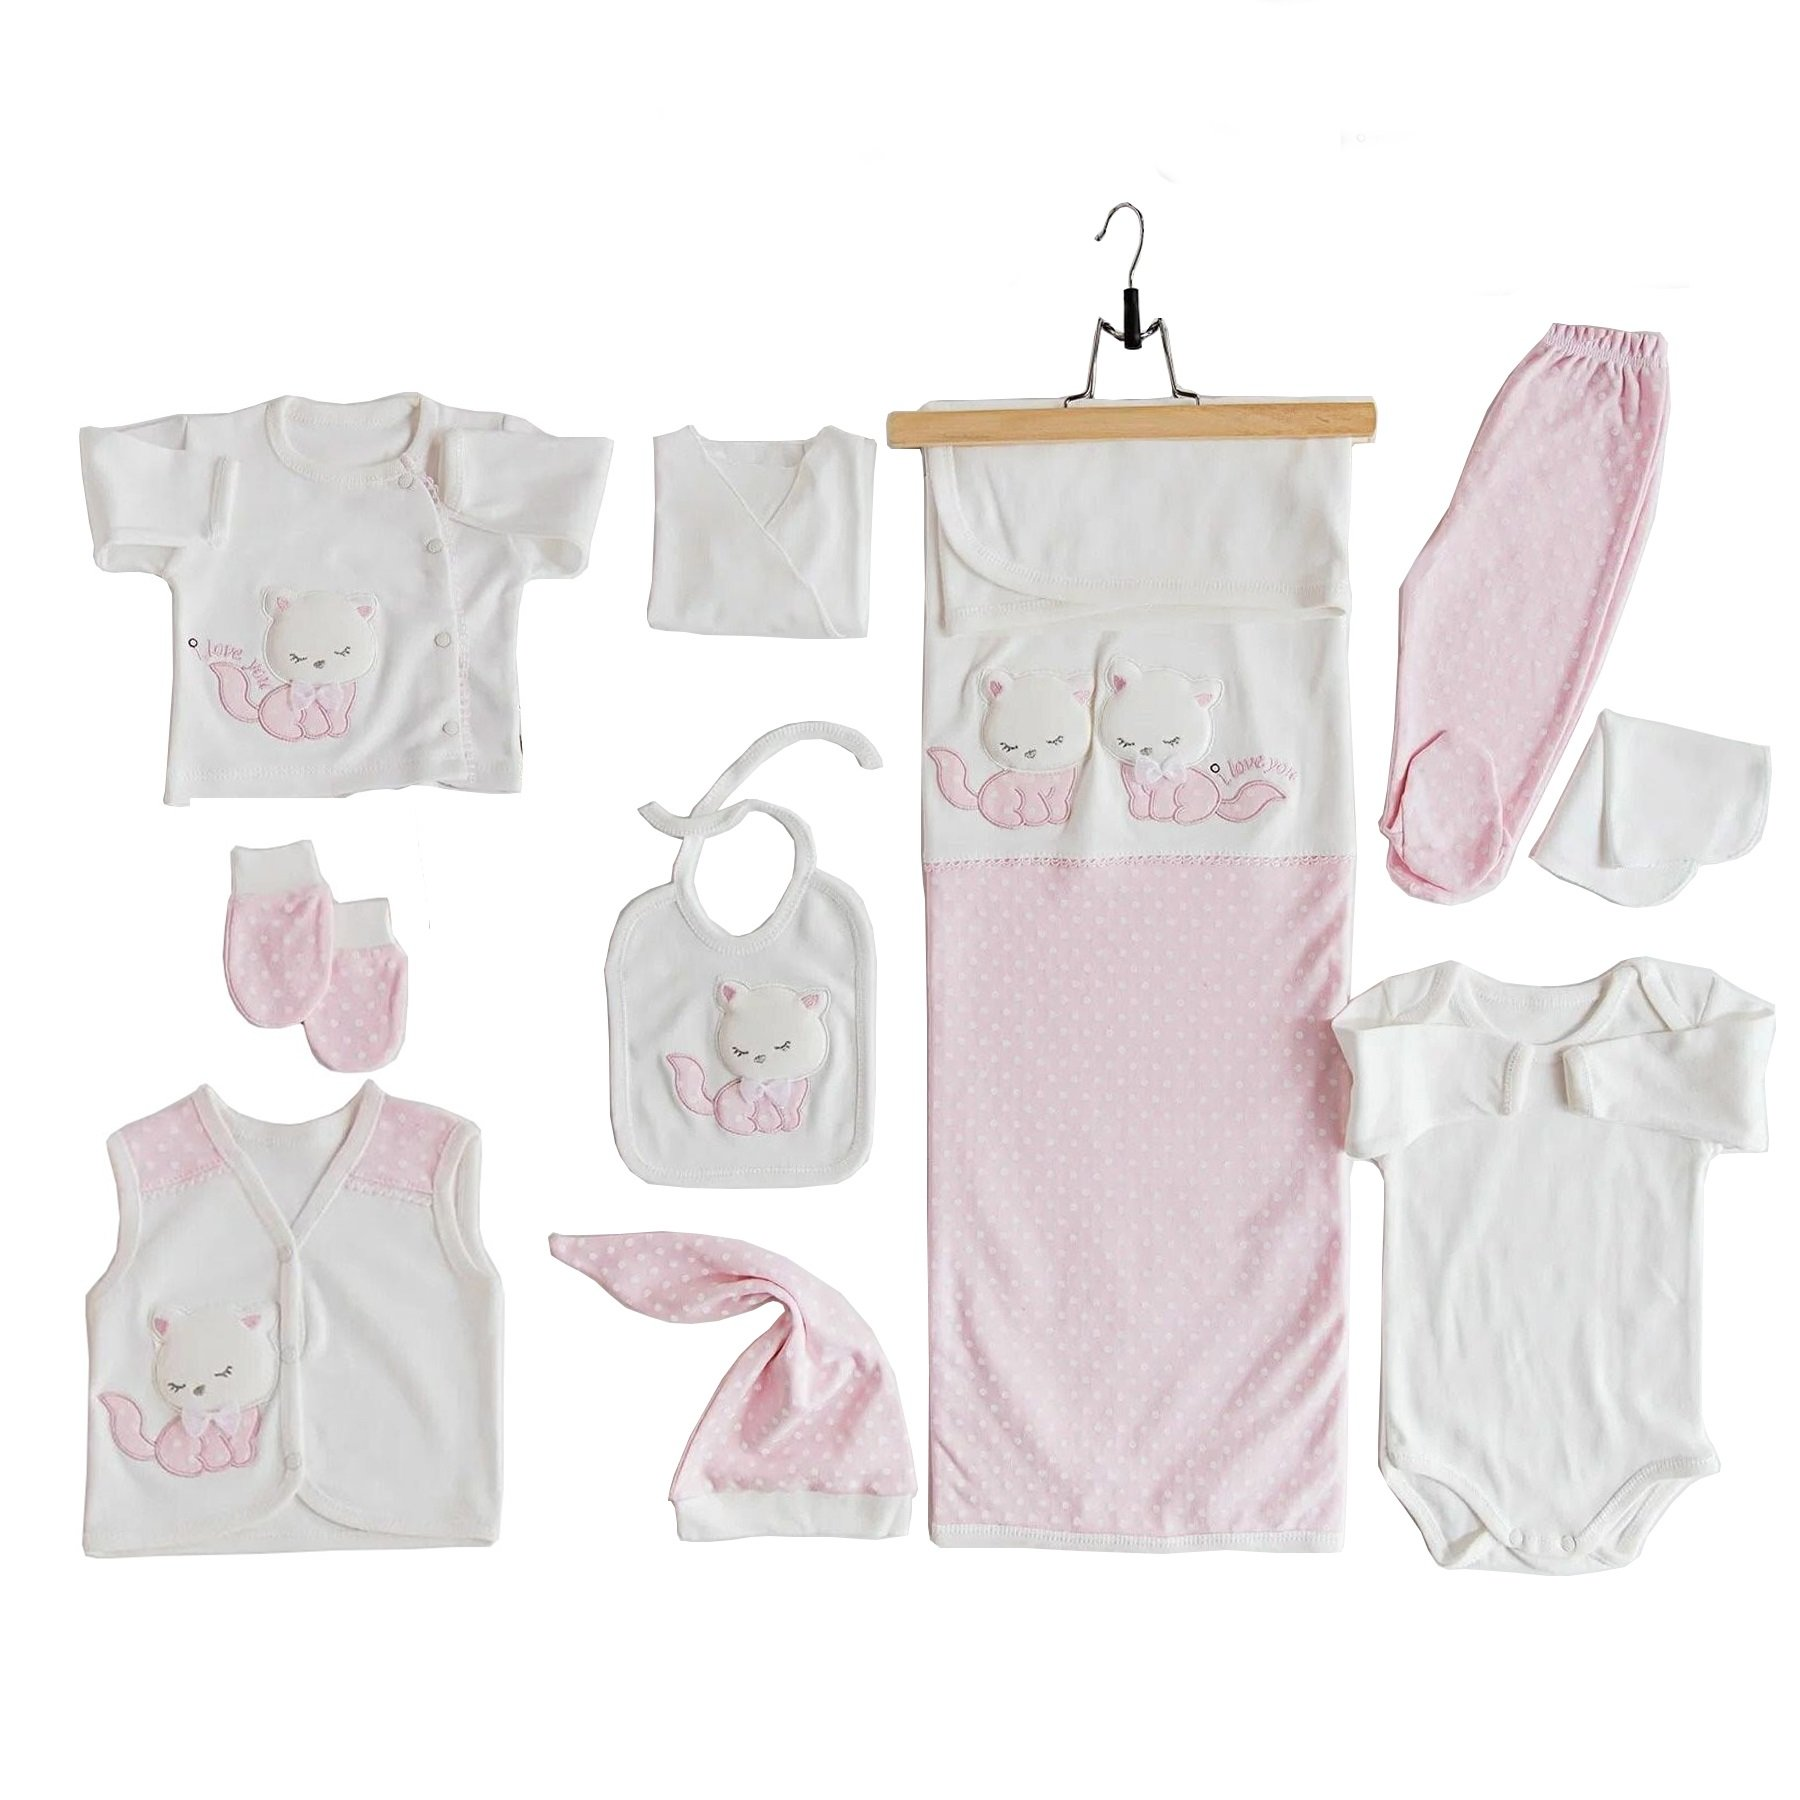 Baby Boys Girls Costume sets Suits Cotton Long Sleeve Cat Embroidered 10 Piece Pink Hospital Visit Set Infant Clothing Autumn Newborn